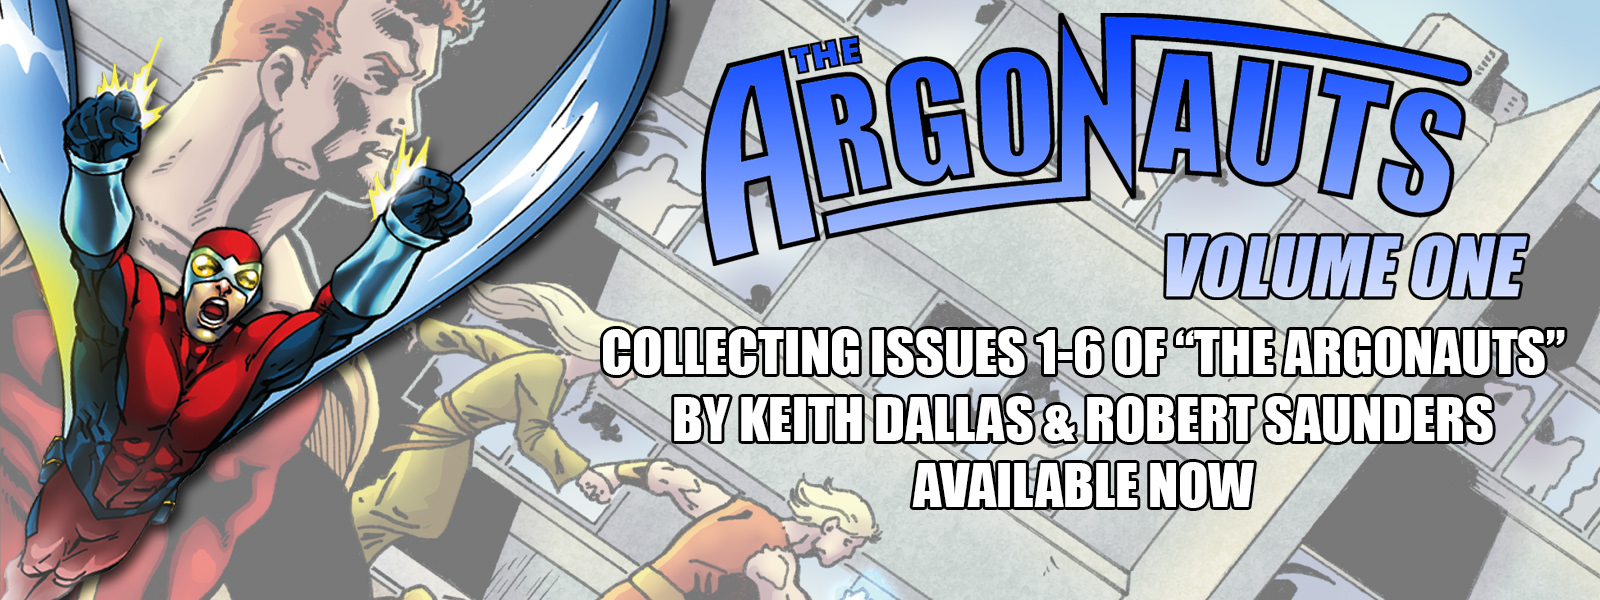 The Argonauts: Book One Available Now!